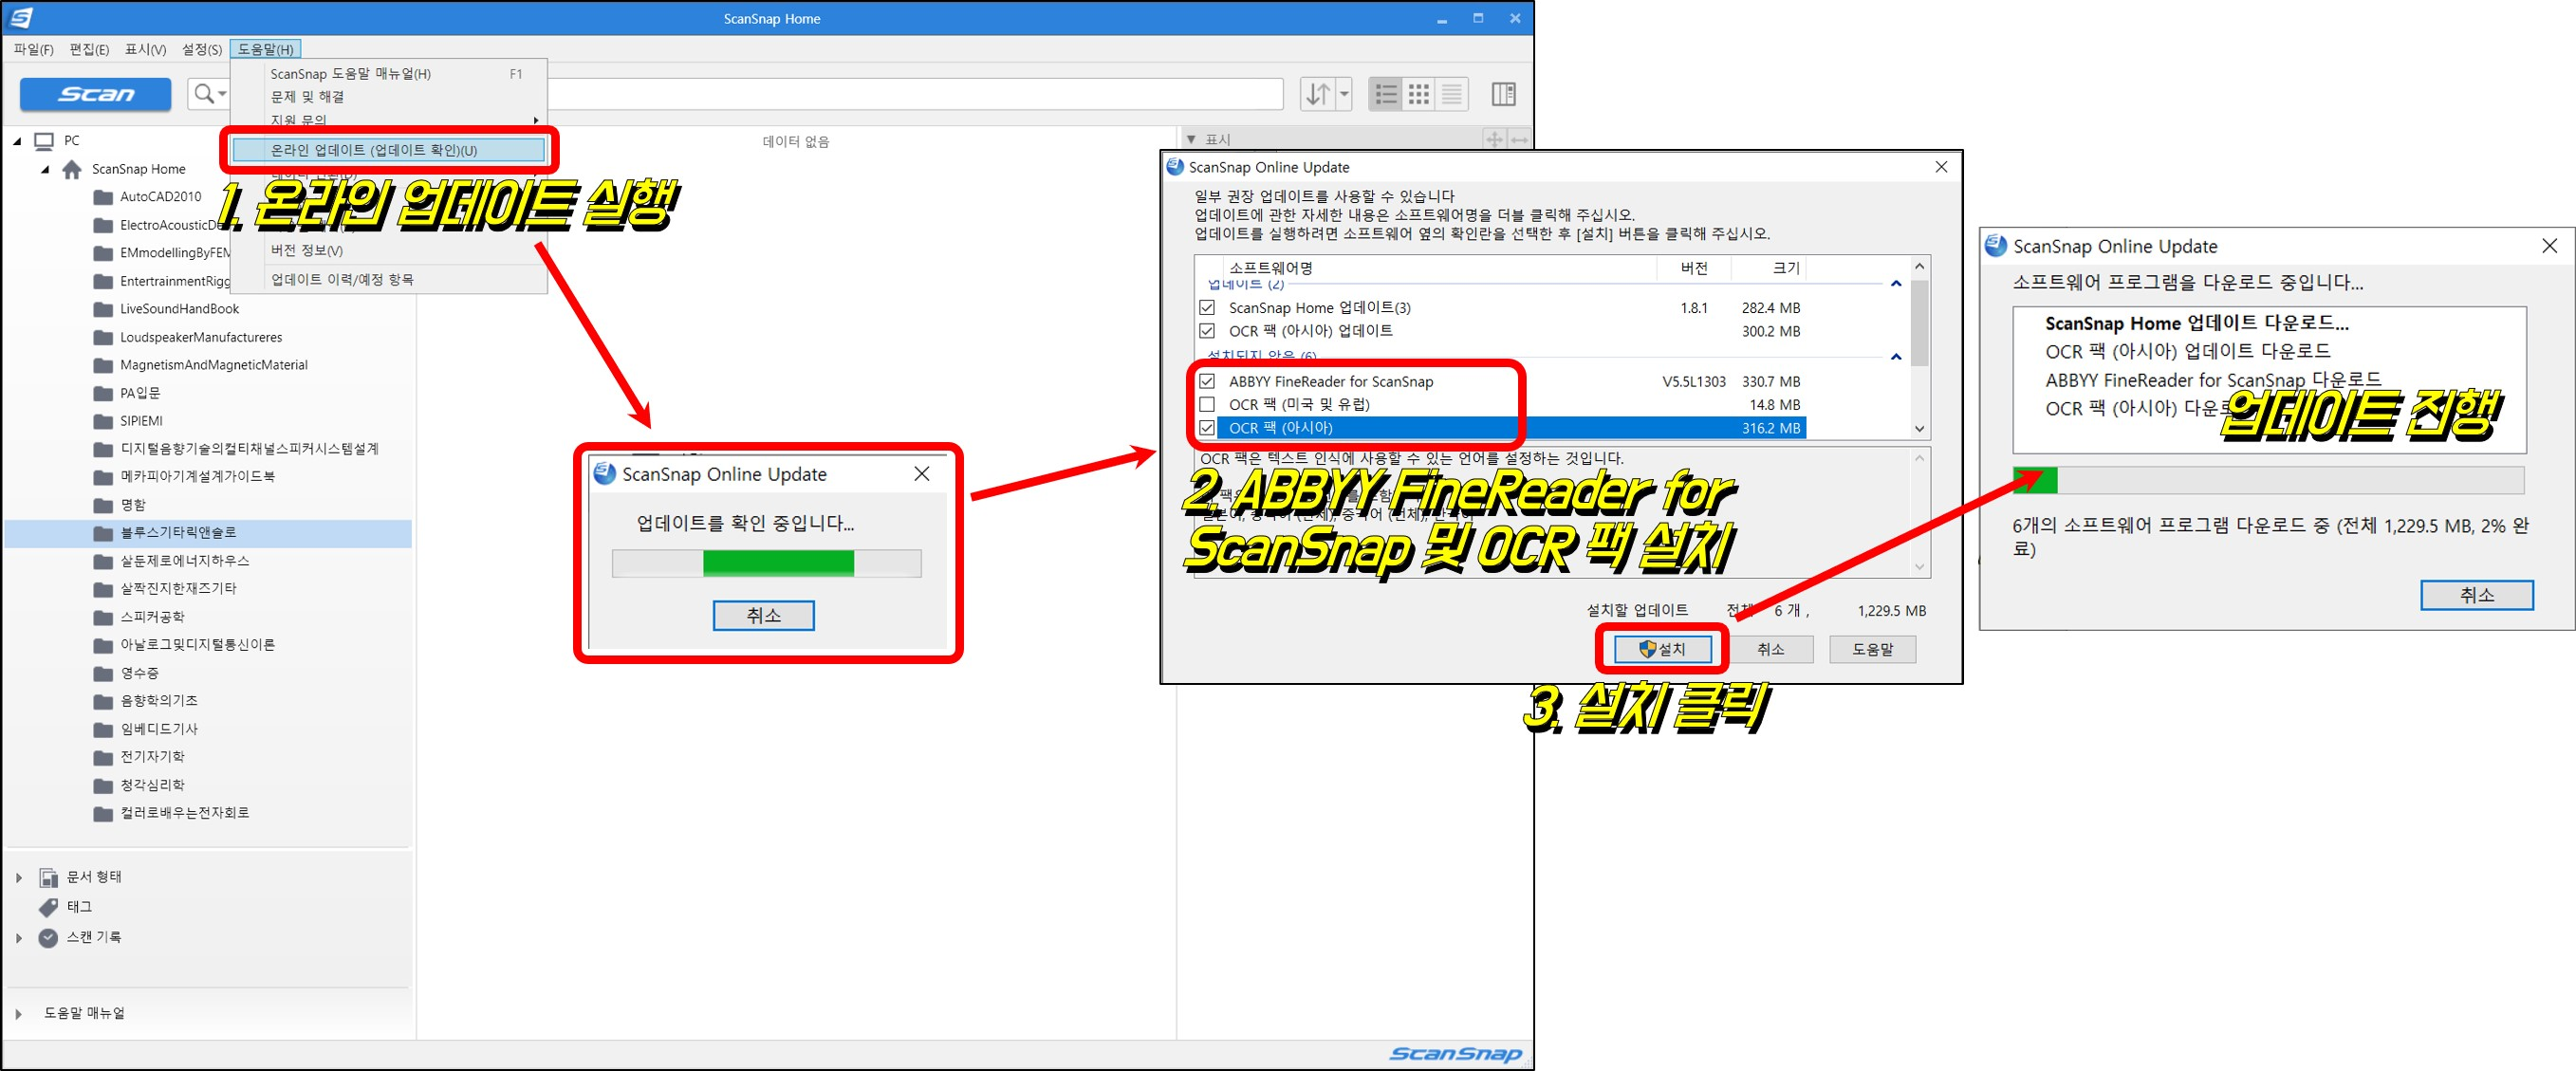 ABBYY FineReader TM 5.5 설치 방법